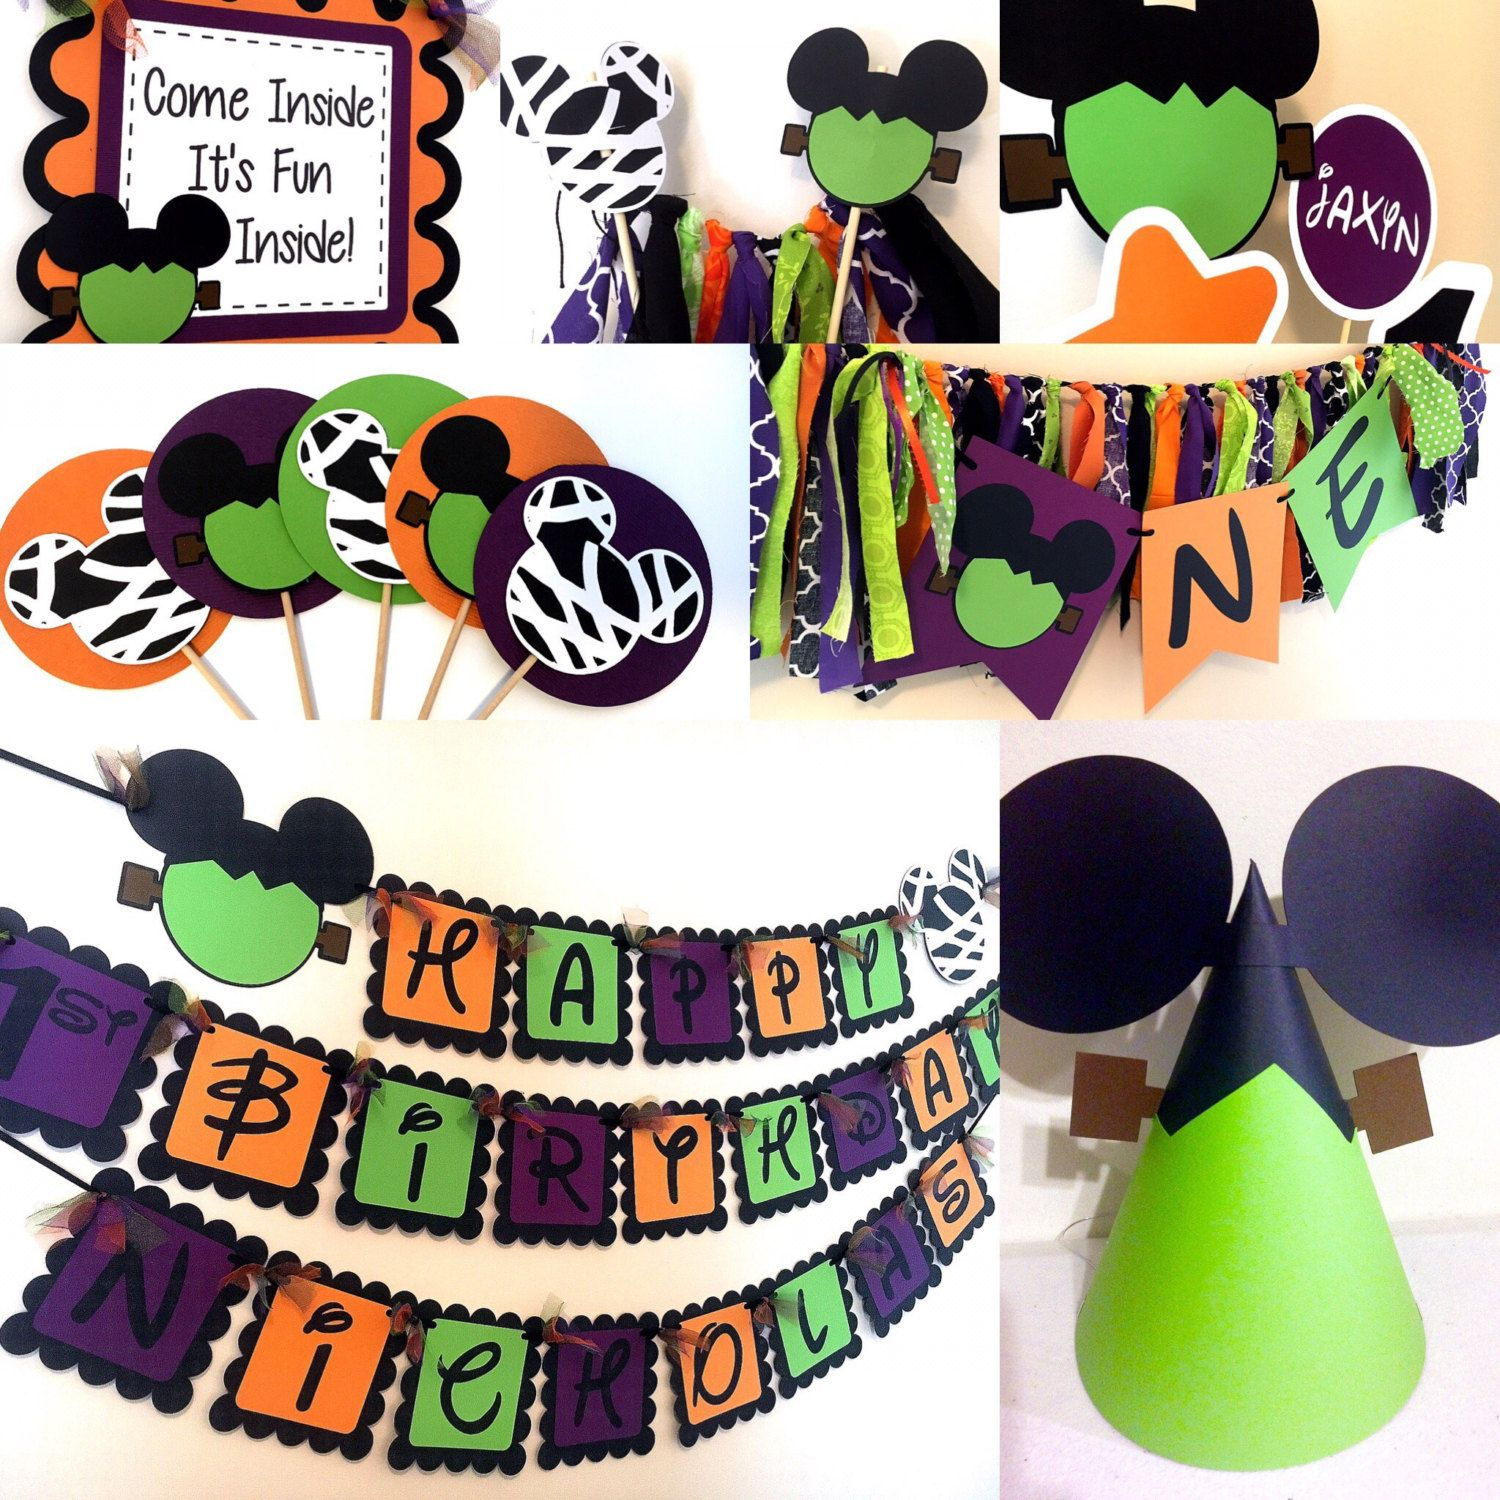 Halloween Party Packages.Halloween Mickey Mouse Inspired Birthday Party Packages Etsy Halloween Themed Birthday Party Halloween First Birthday Birthday Halloween Party